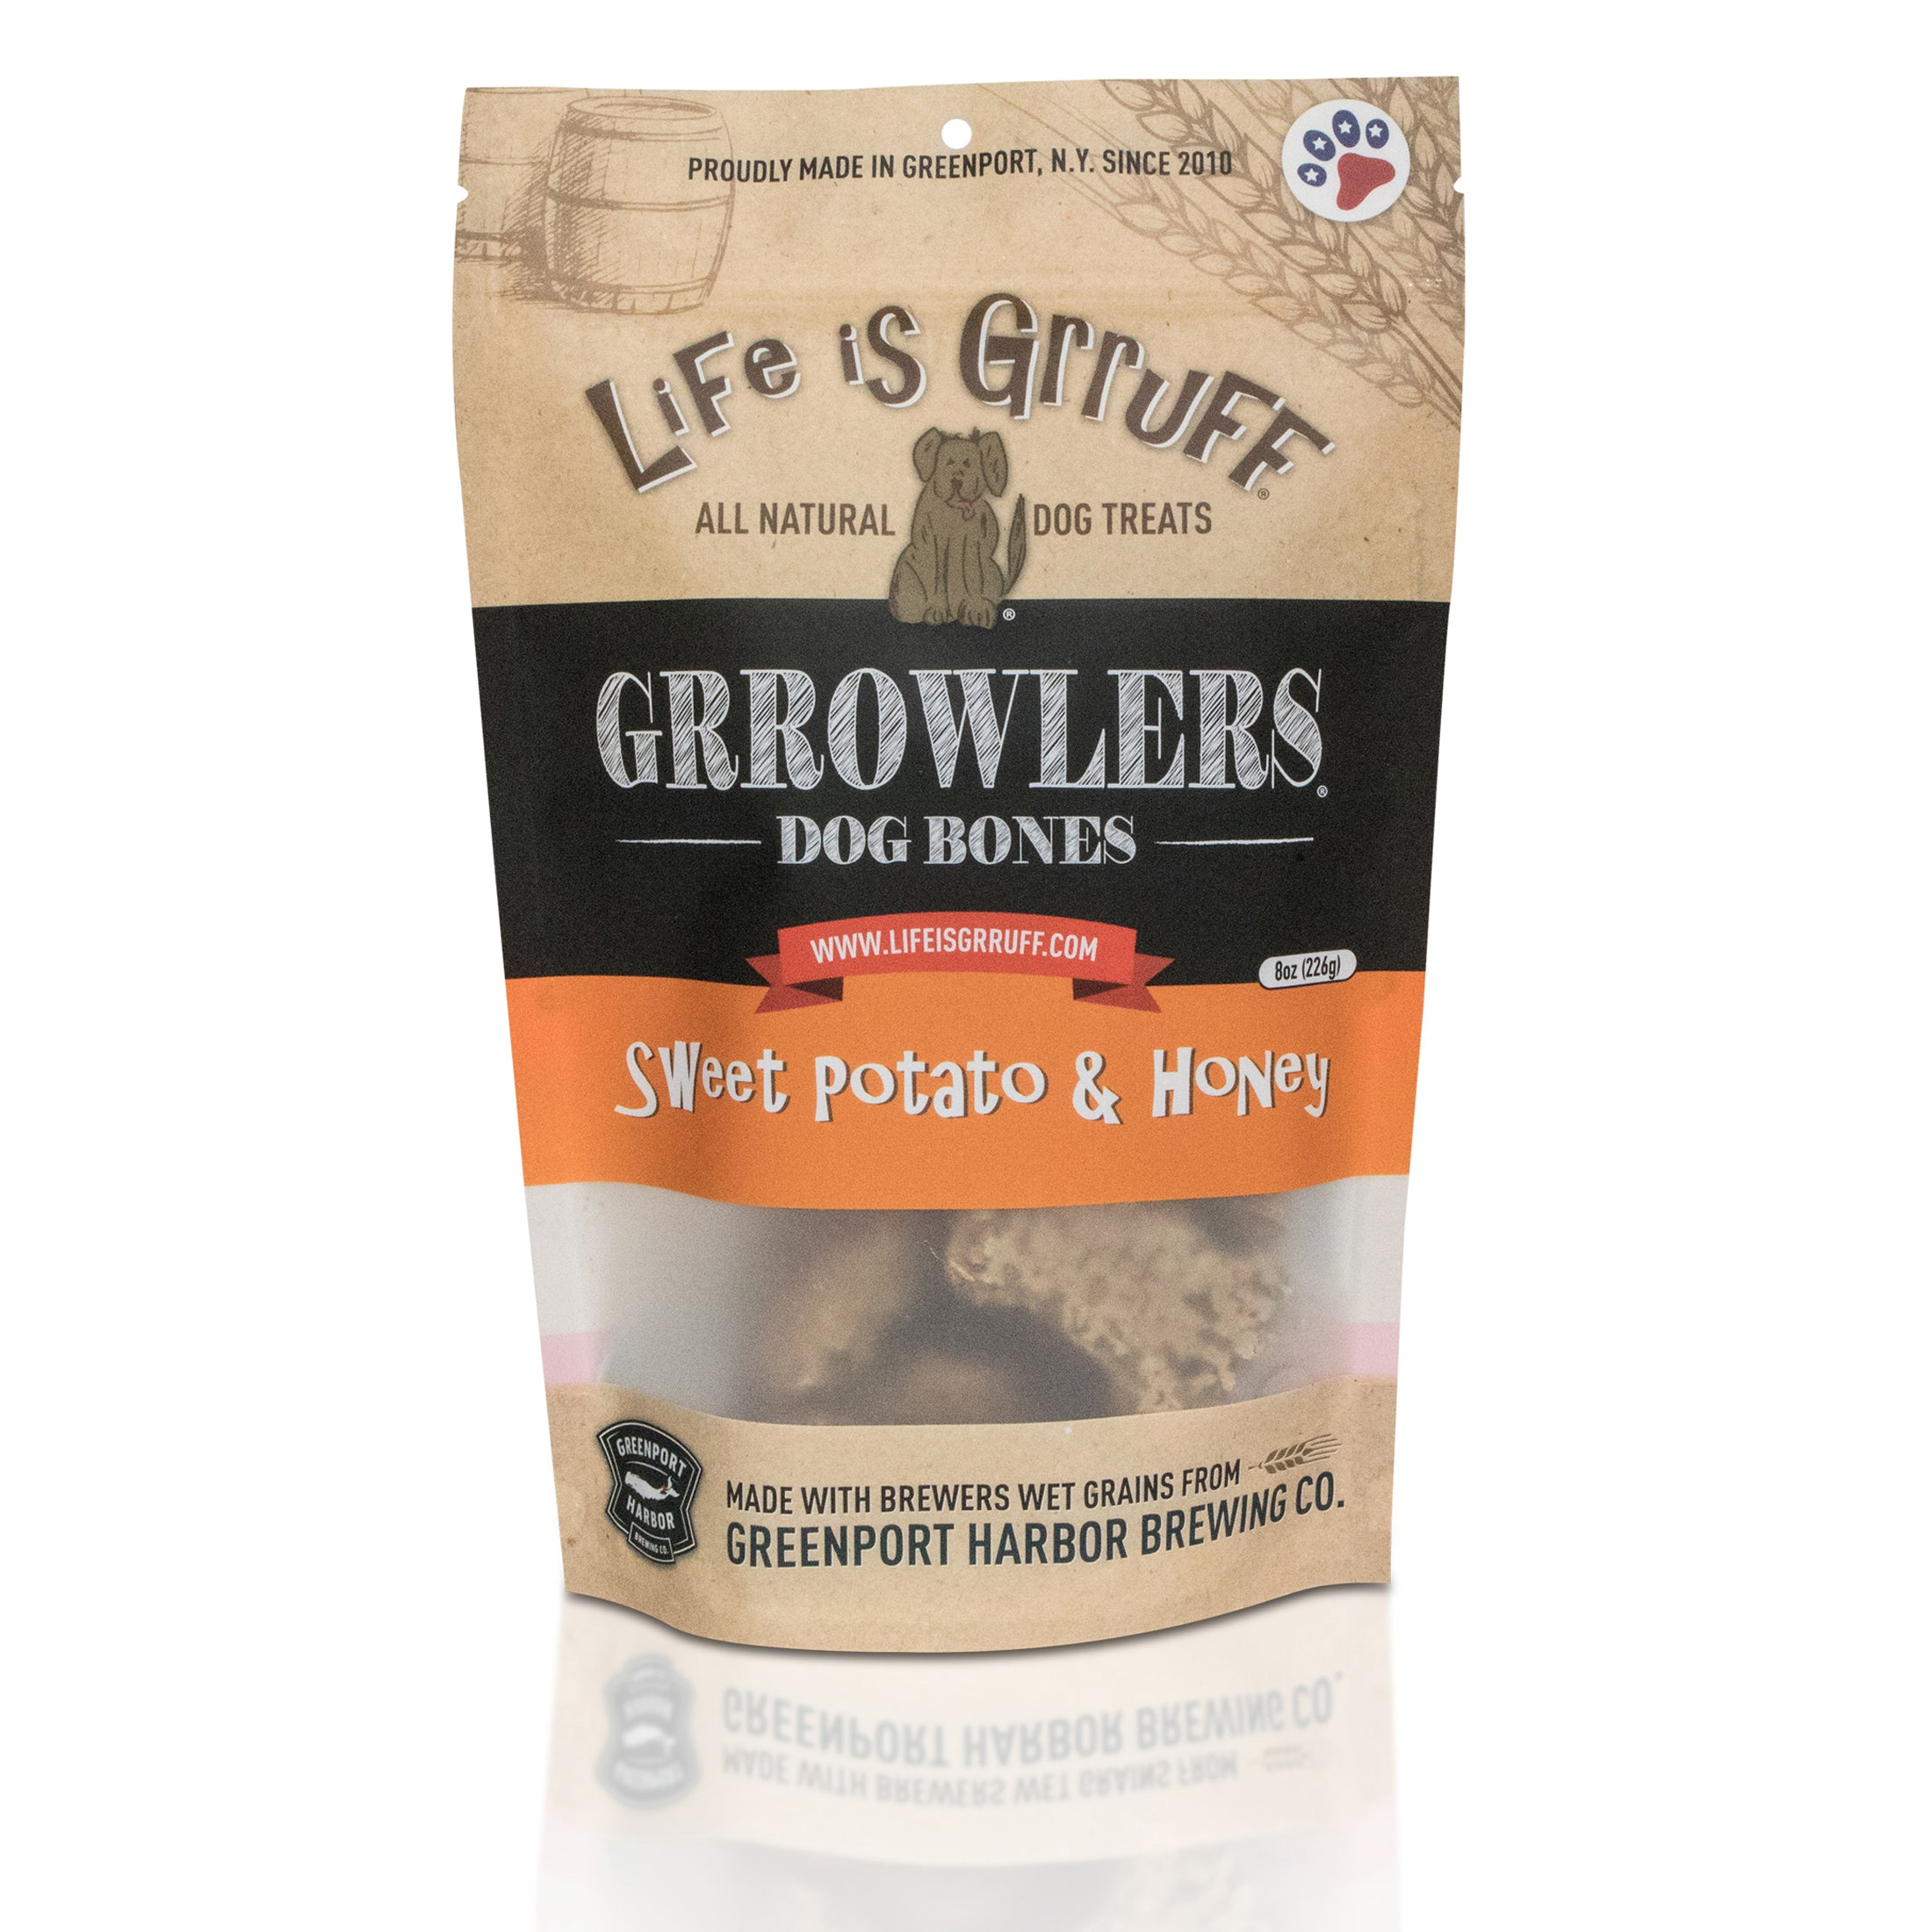 Grrowler's Dog Bones: Sweet Potato & Honey